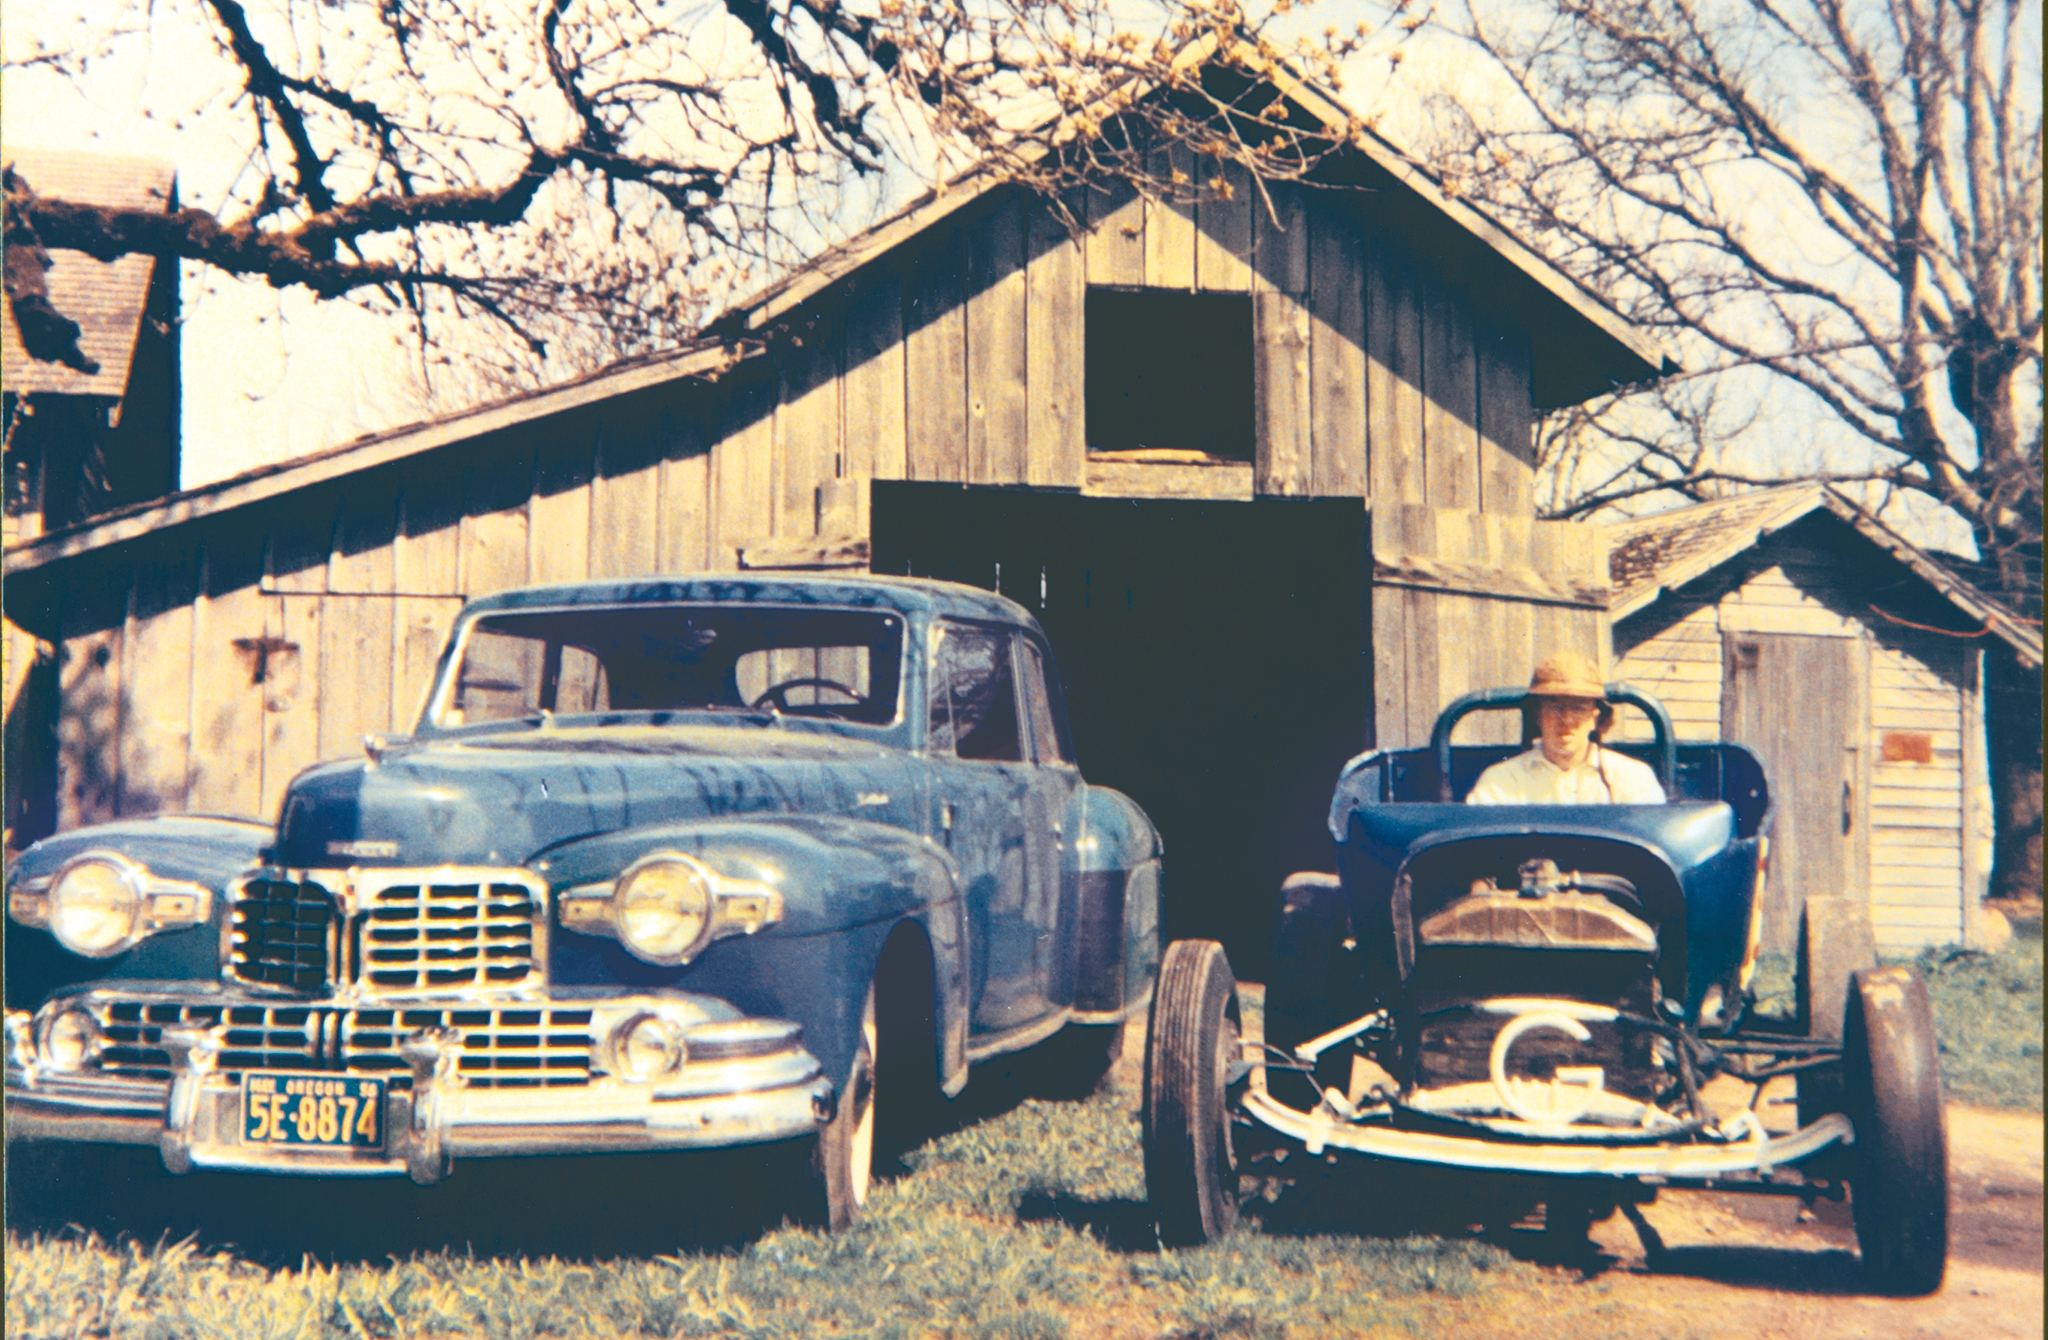 Jack's last roadster, seen here in 1955, sported a 286-inch methanol-fed flathead. The '48 Lincoln Continental parked alongside was Jack's daily driver. Jack has lived on this property since 1952. Notice the barn in the background? Jack has been known to hang onto things, and the Lincoln is parked in that barn today!